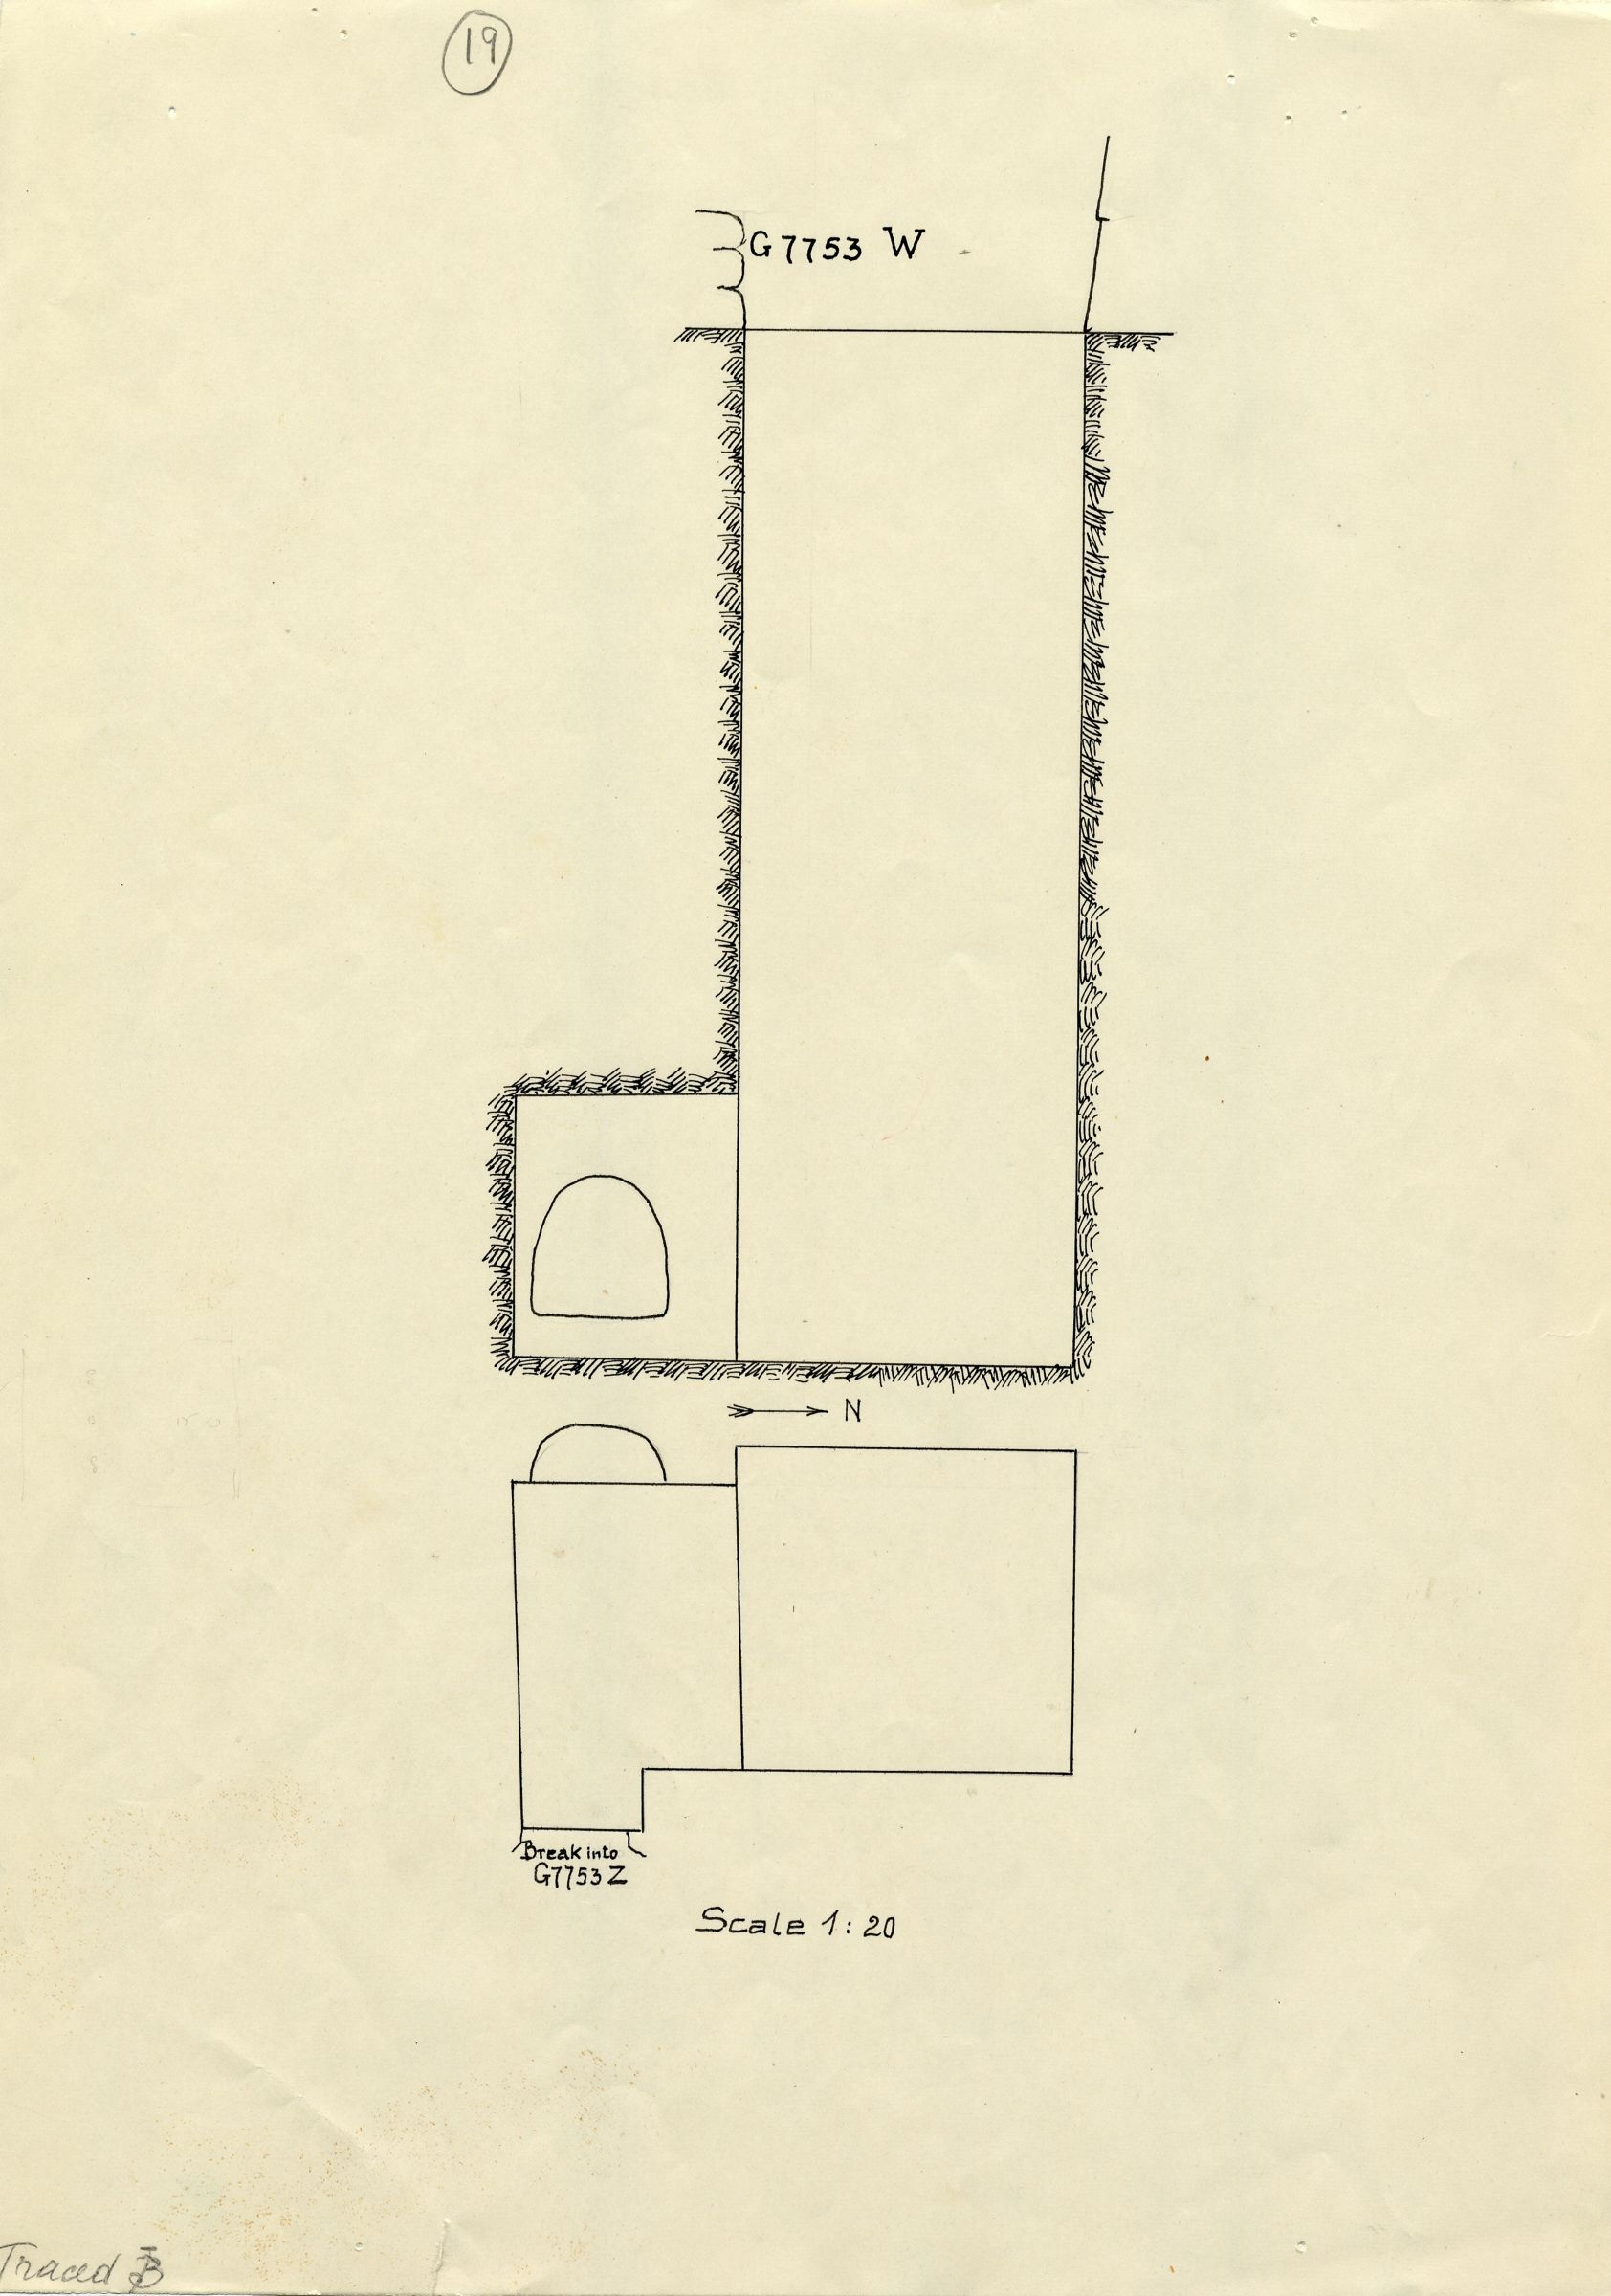 Maps and plans: G 7753, Shaft W